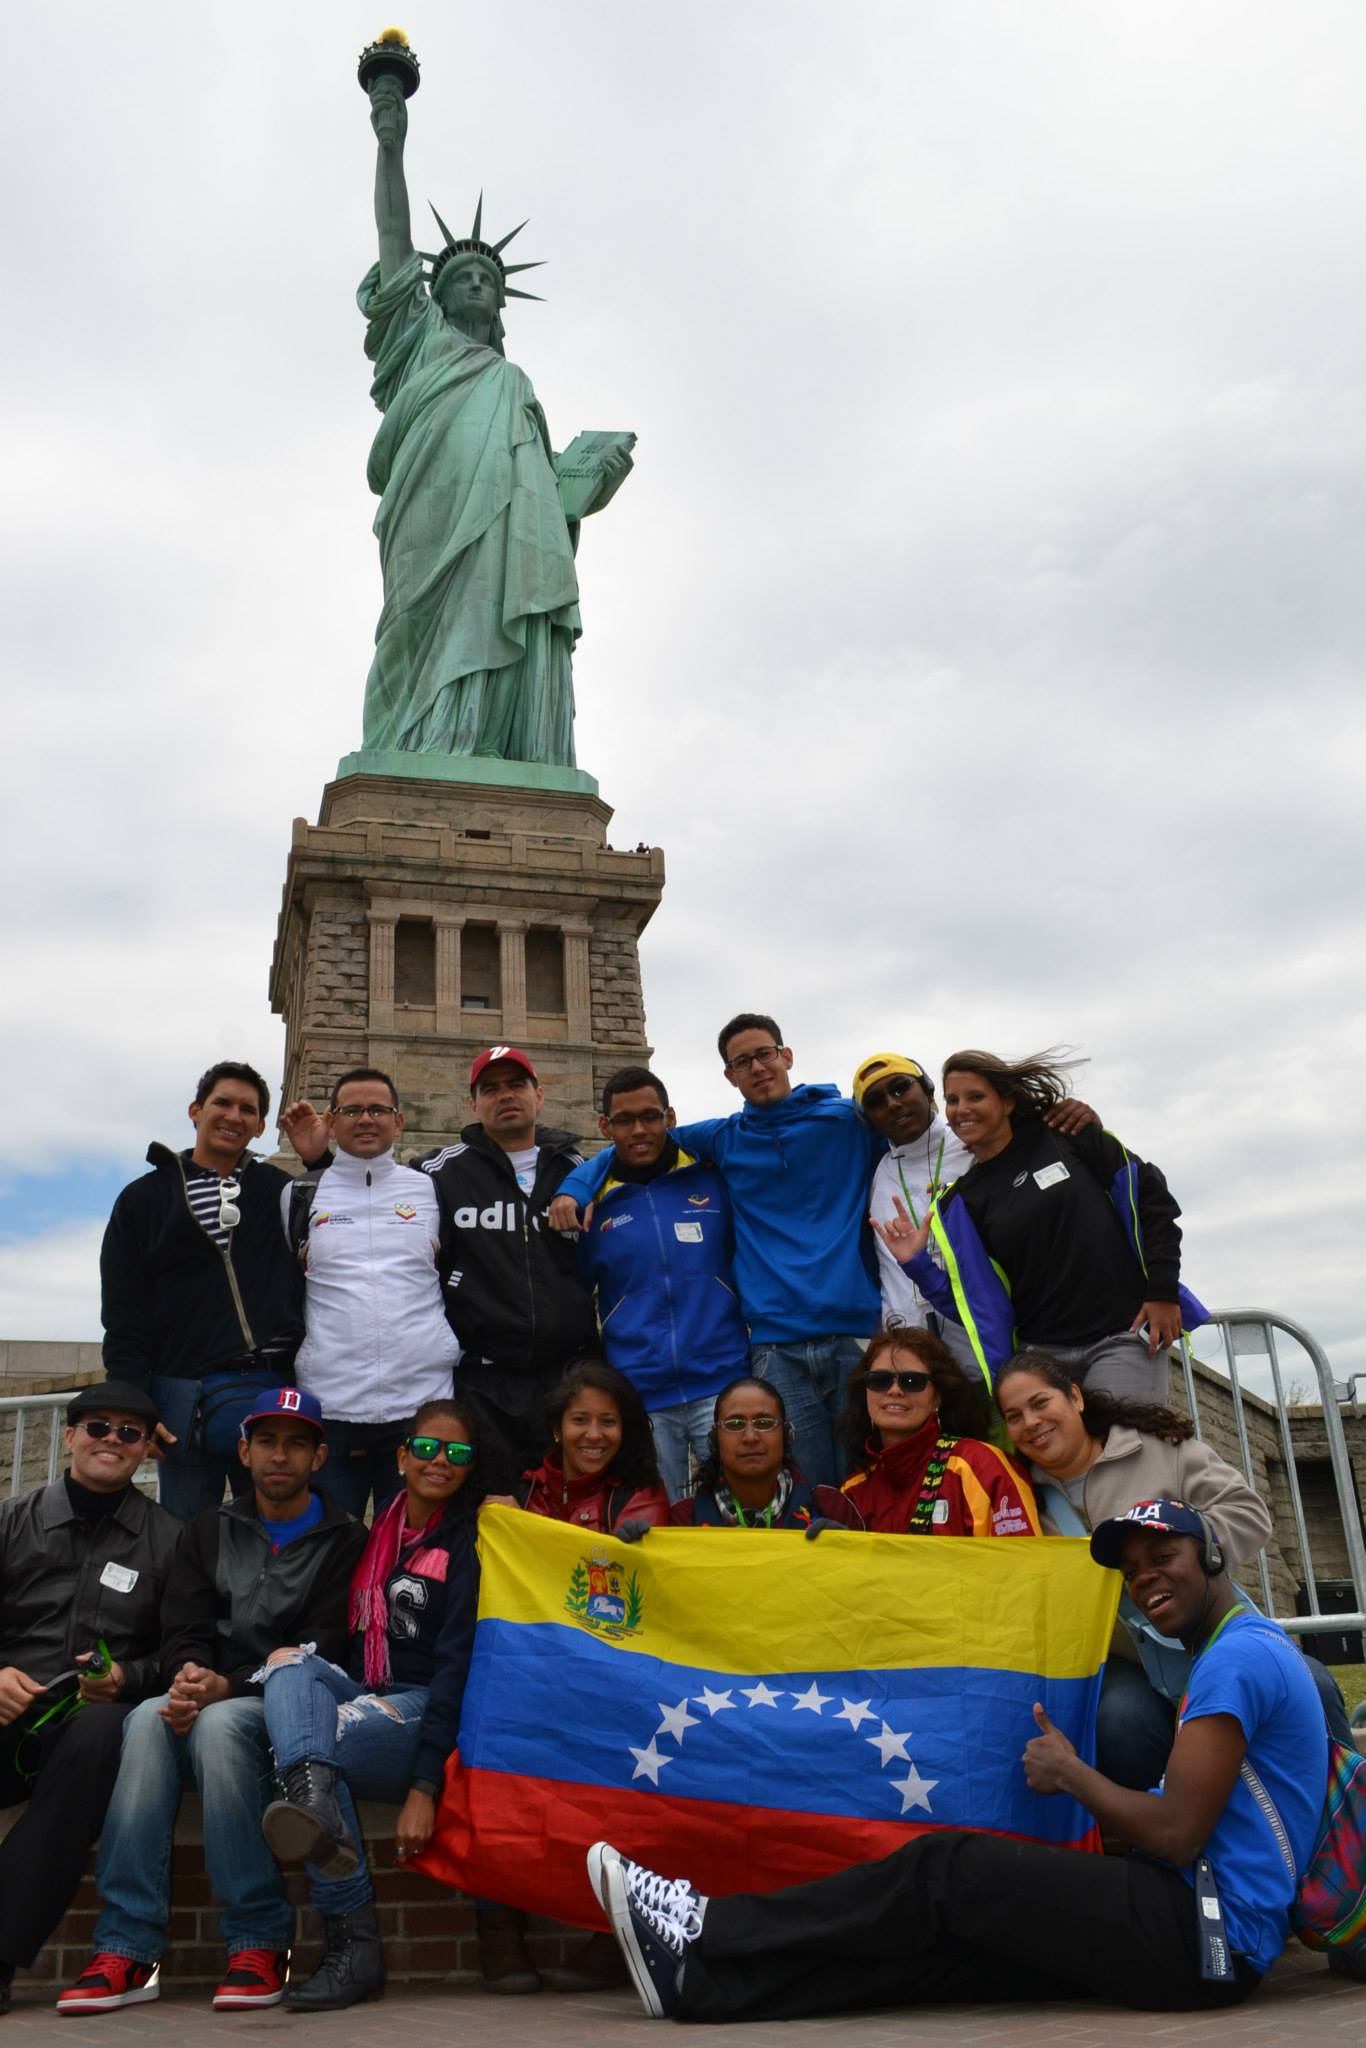 A shot with the Statue of Liberty is pretty much a requirement for any visitor to NY!